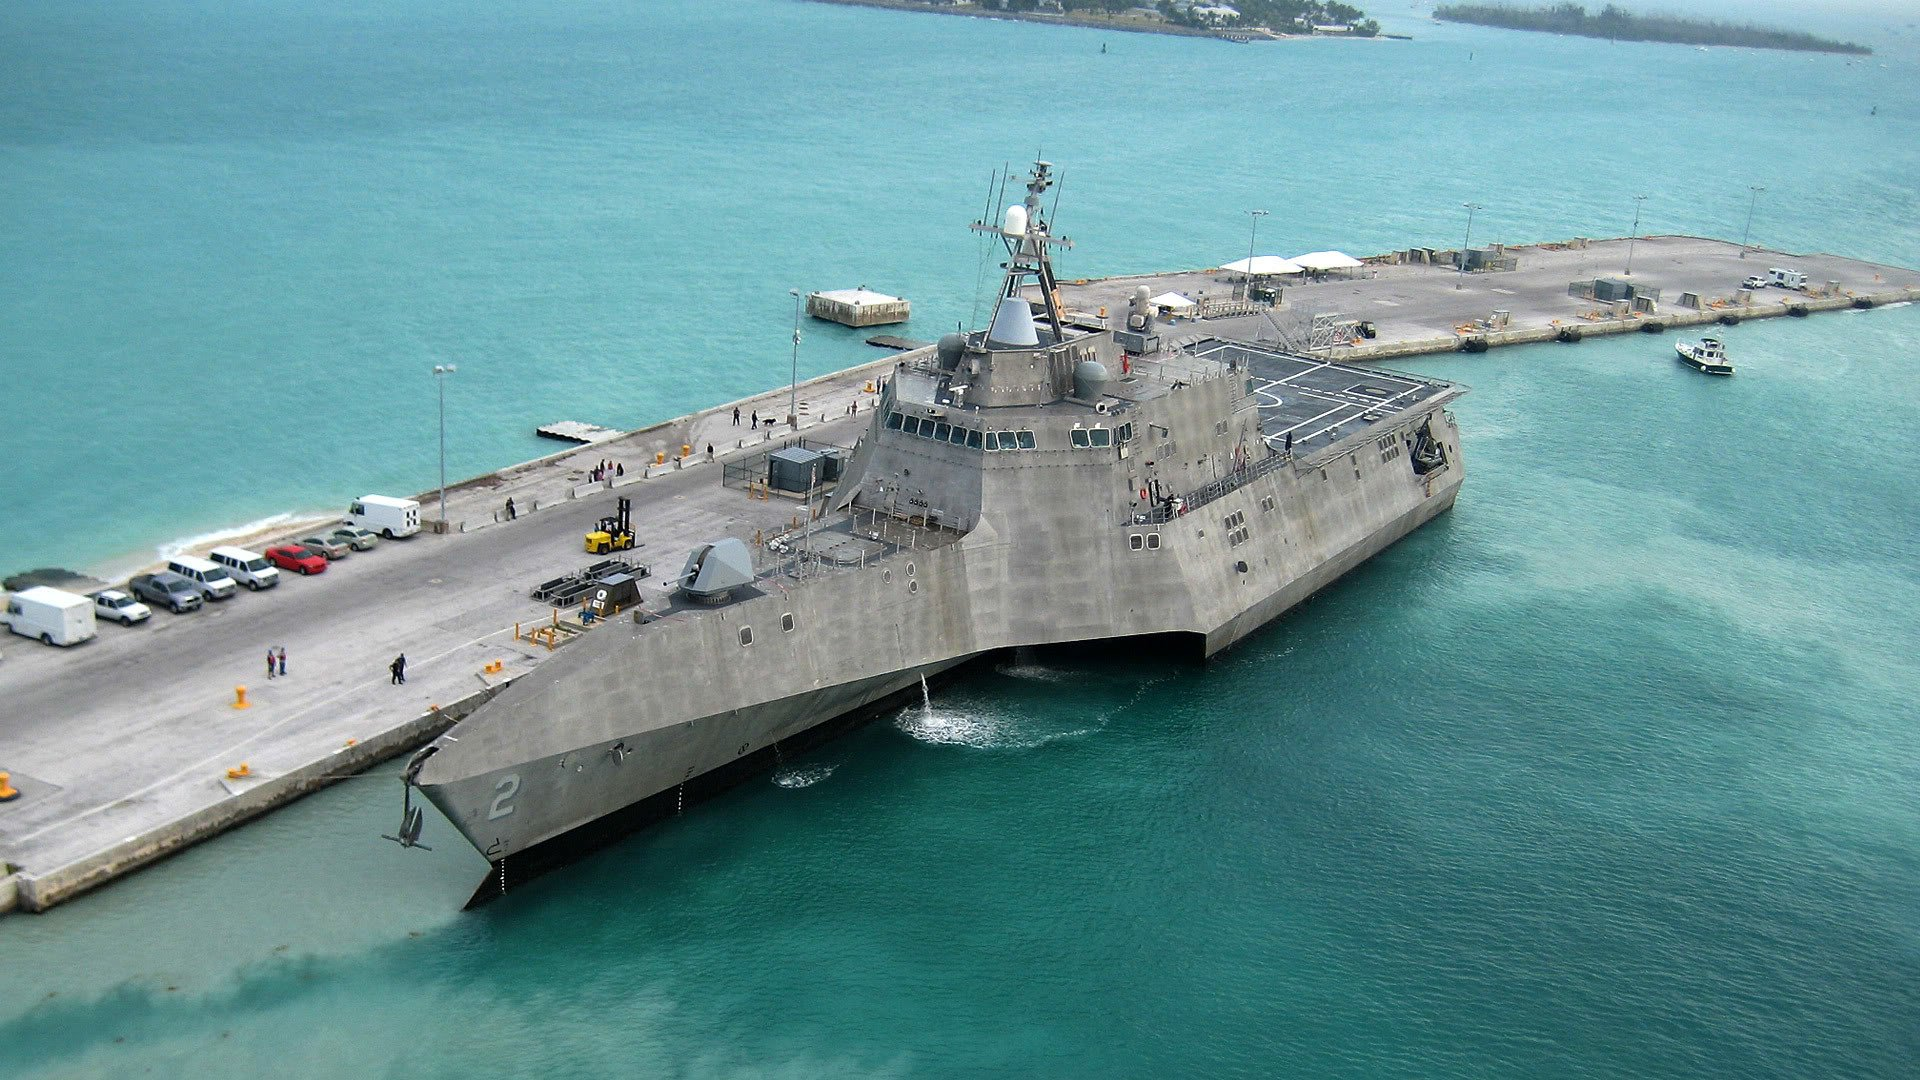 Littoral Combat Ship Uss Independence Lcs 2 Arrives At